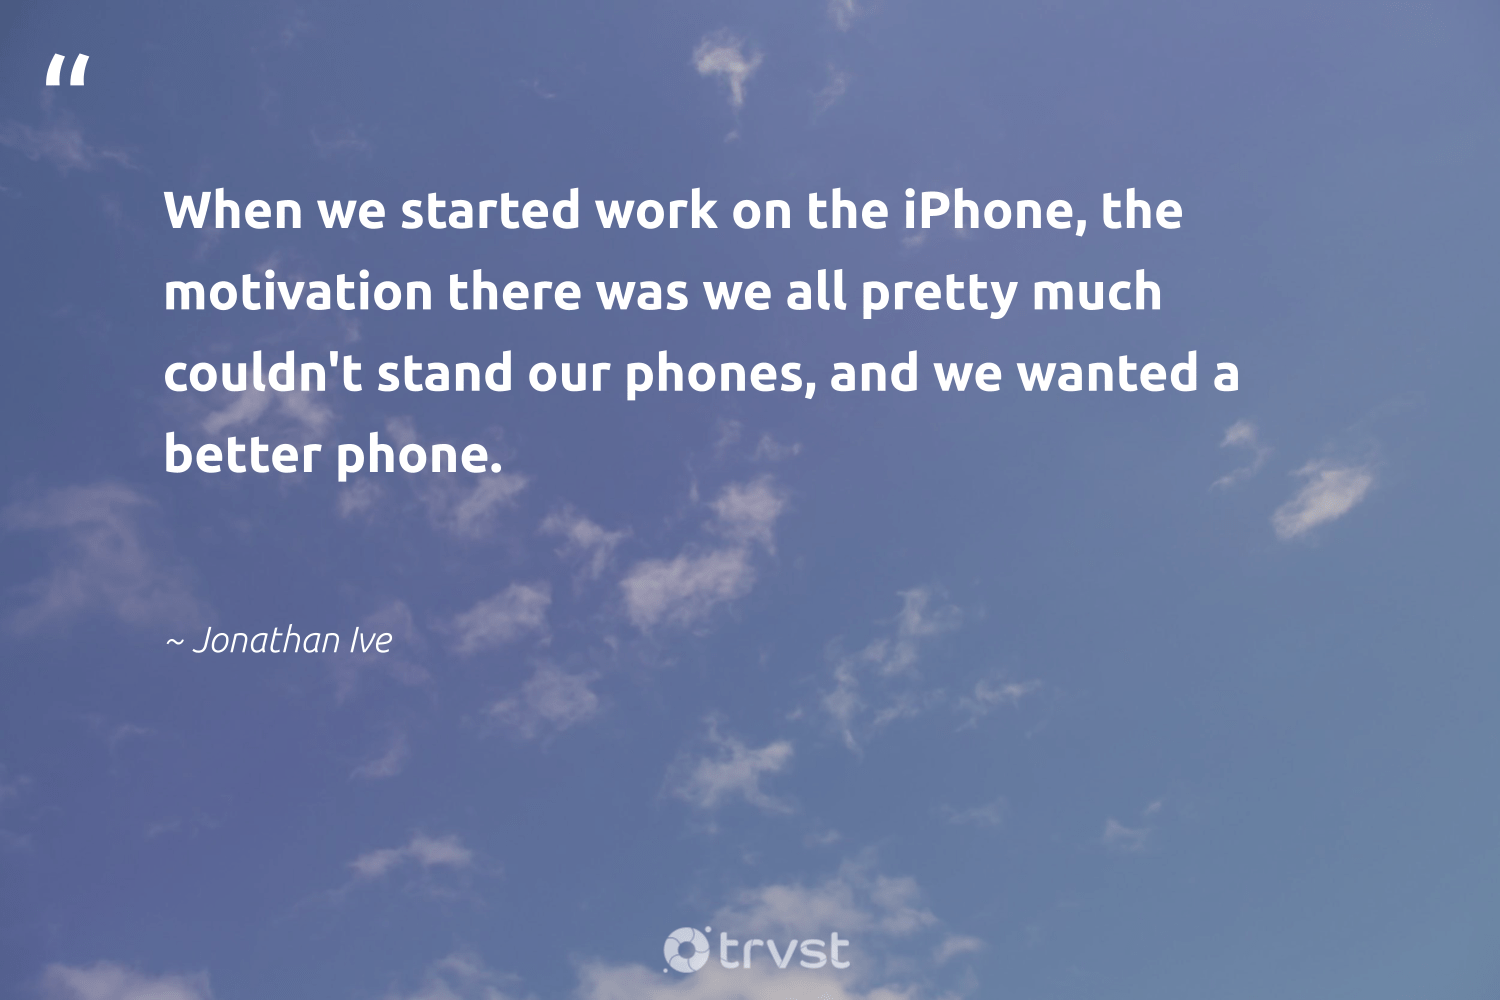 """When we started work on the iPhone, the motivation there was we all pretty much couldn't stand our phones, and we wanted a better phone.""  - Jonathan Ive #trvst #quotes #motivation #meditation #nevergiveup #togetherwecan #bethechange #mindset #futureofwork #health #thinkgreen #positivity"